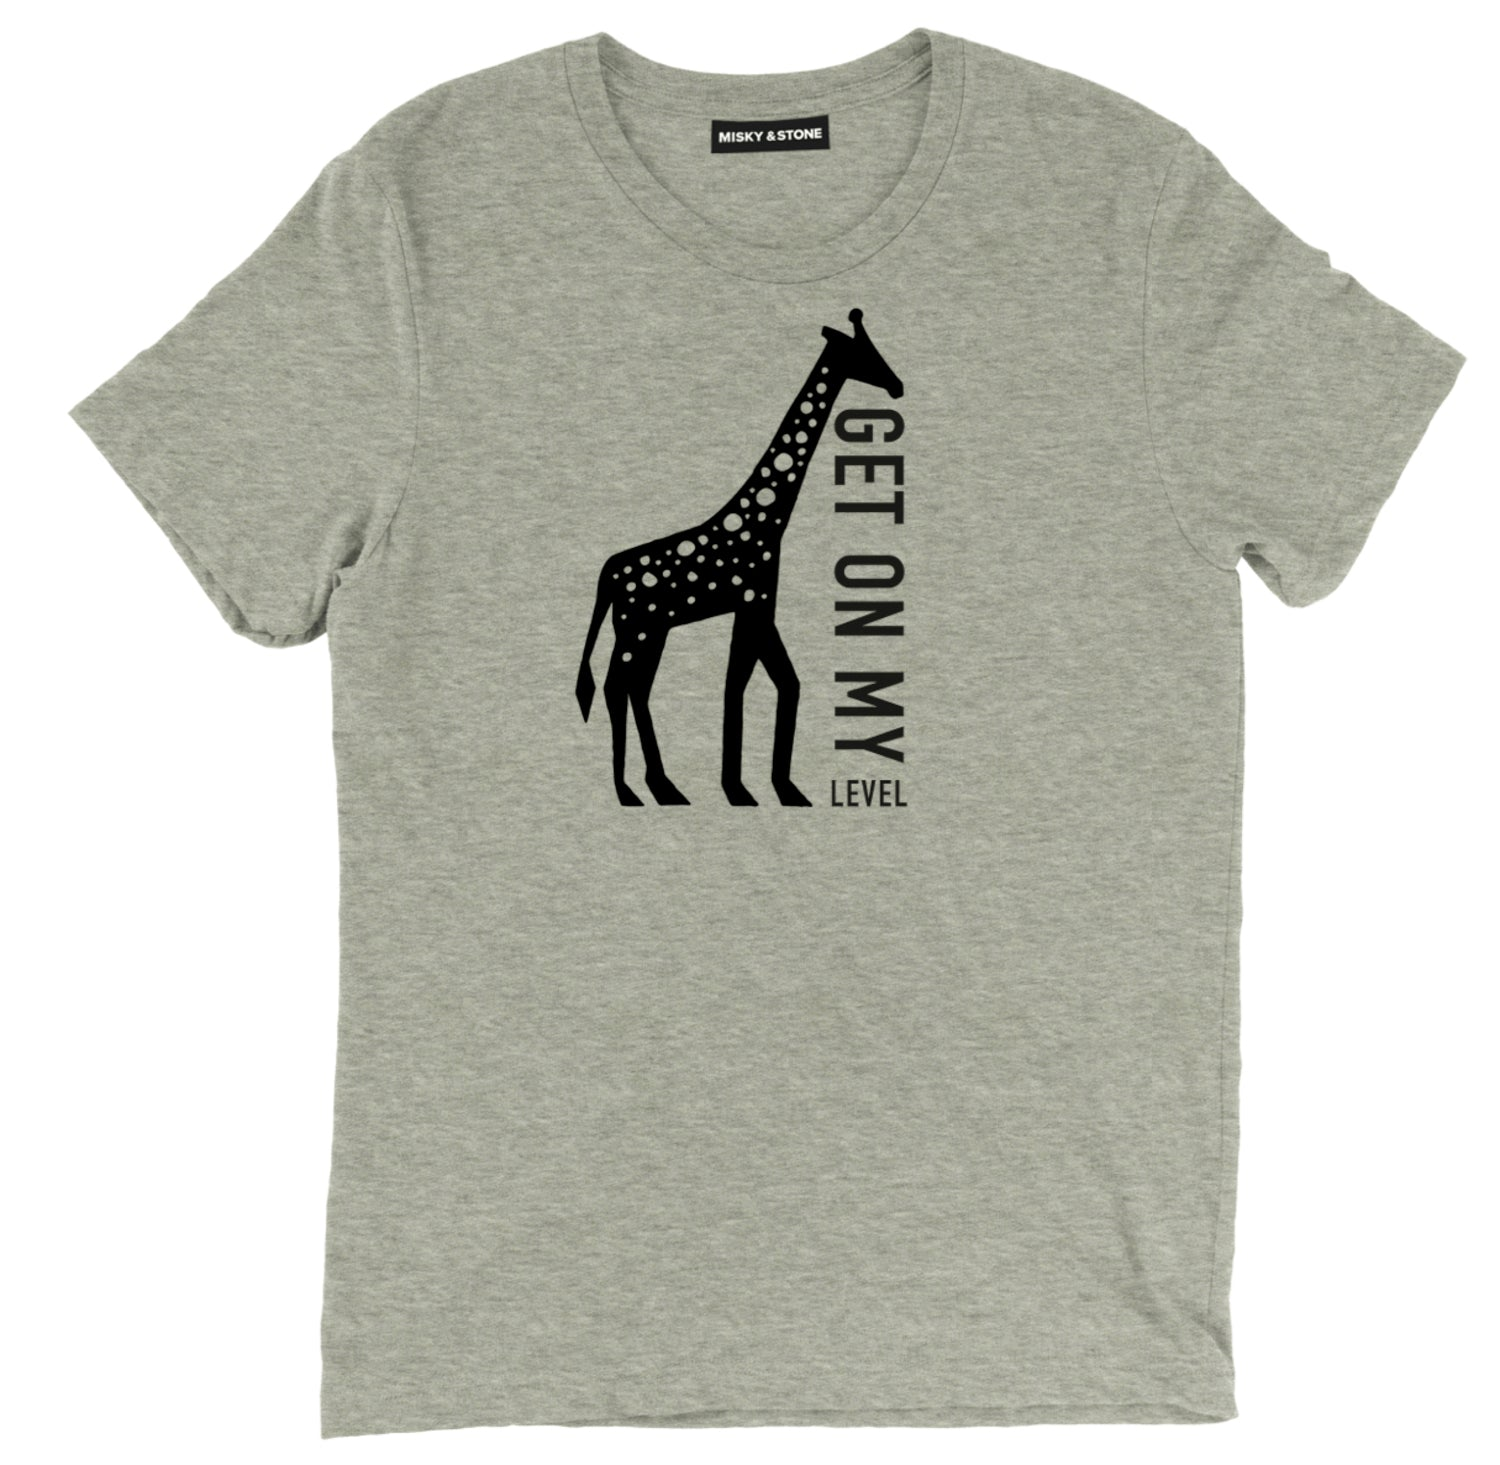 get on my level animal lover tee shirt, get on my level animal lover apparel, get on my level animal lover merch, animal lover clothing